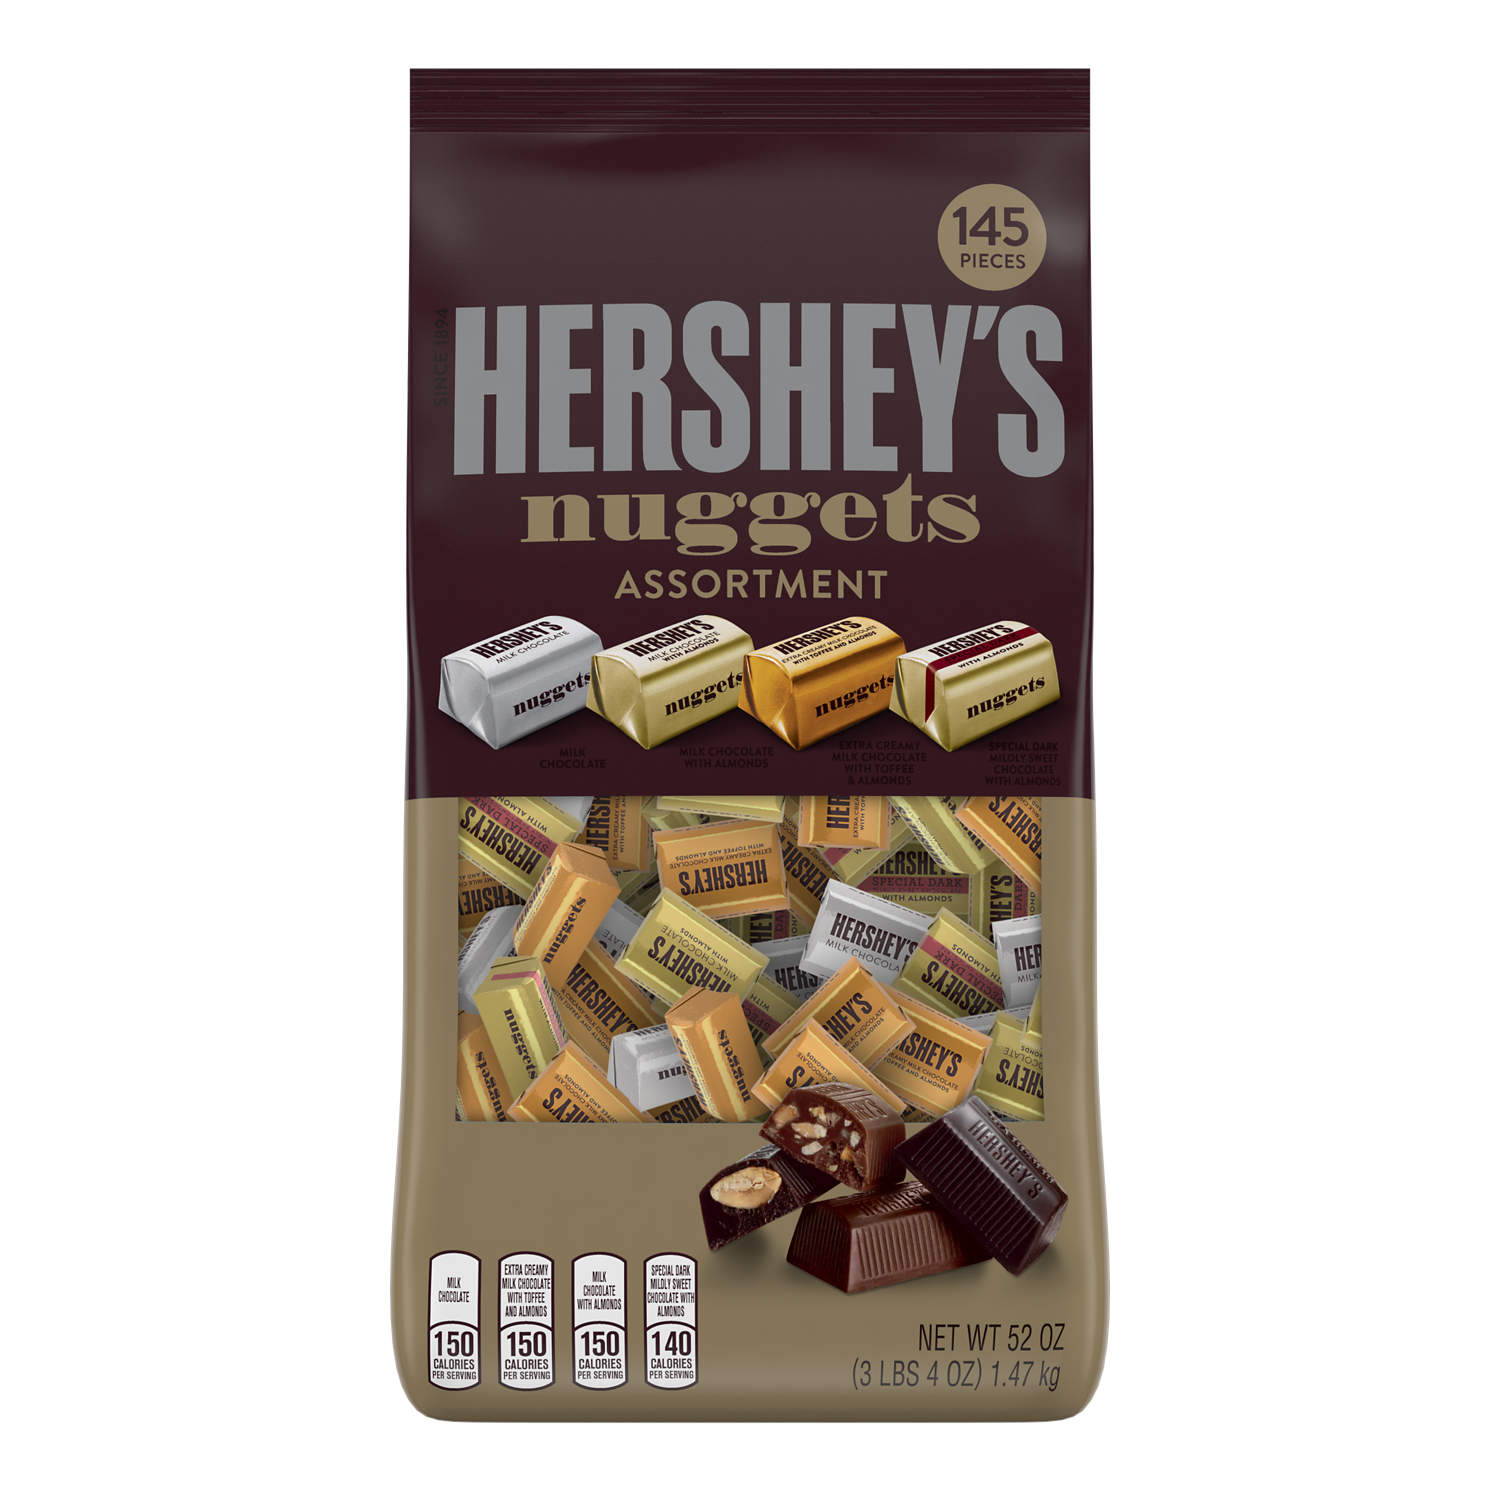 HERSHEY'S NUGGETS Assortment, 52 oz bag, 145 pieces - Front of Package